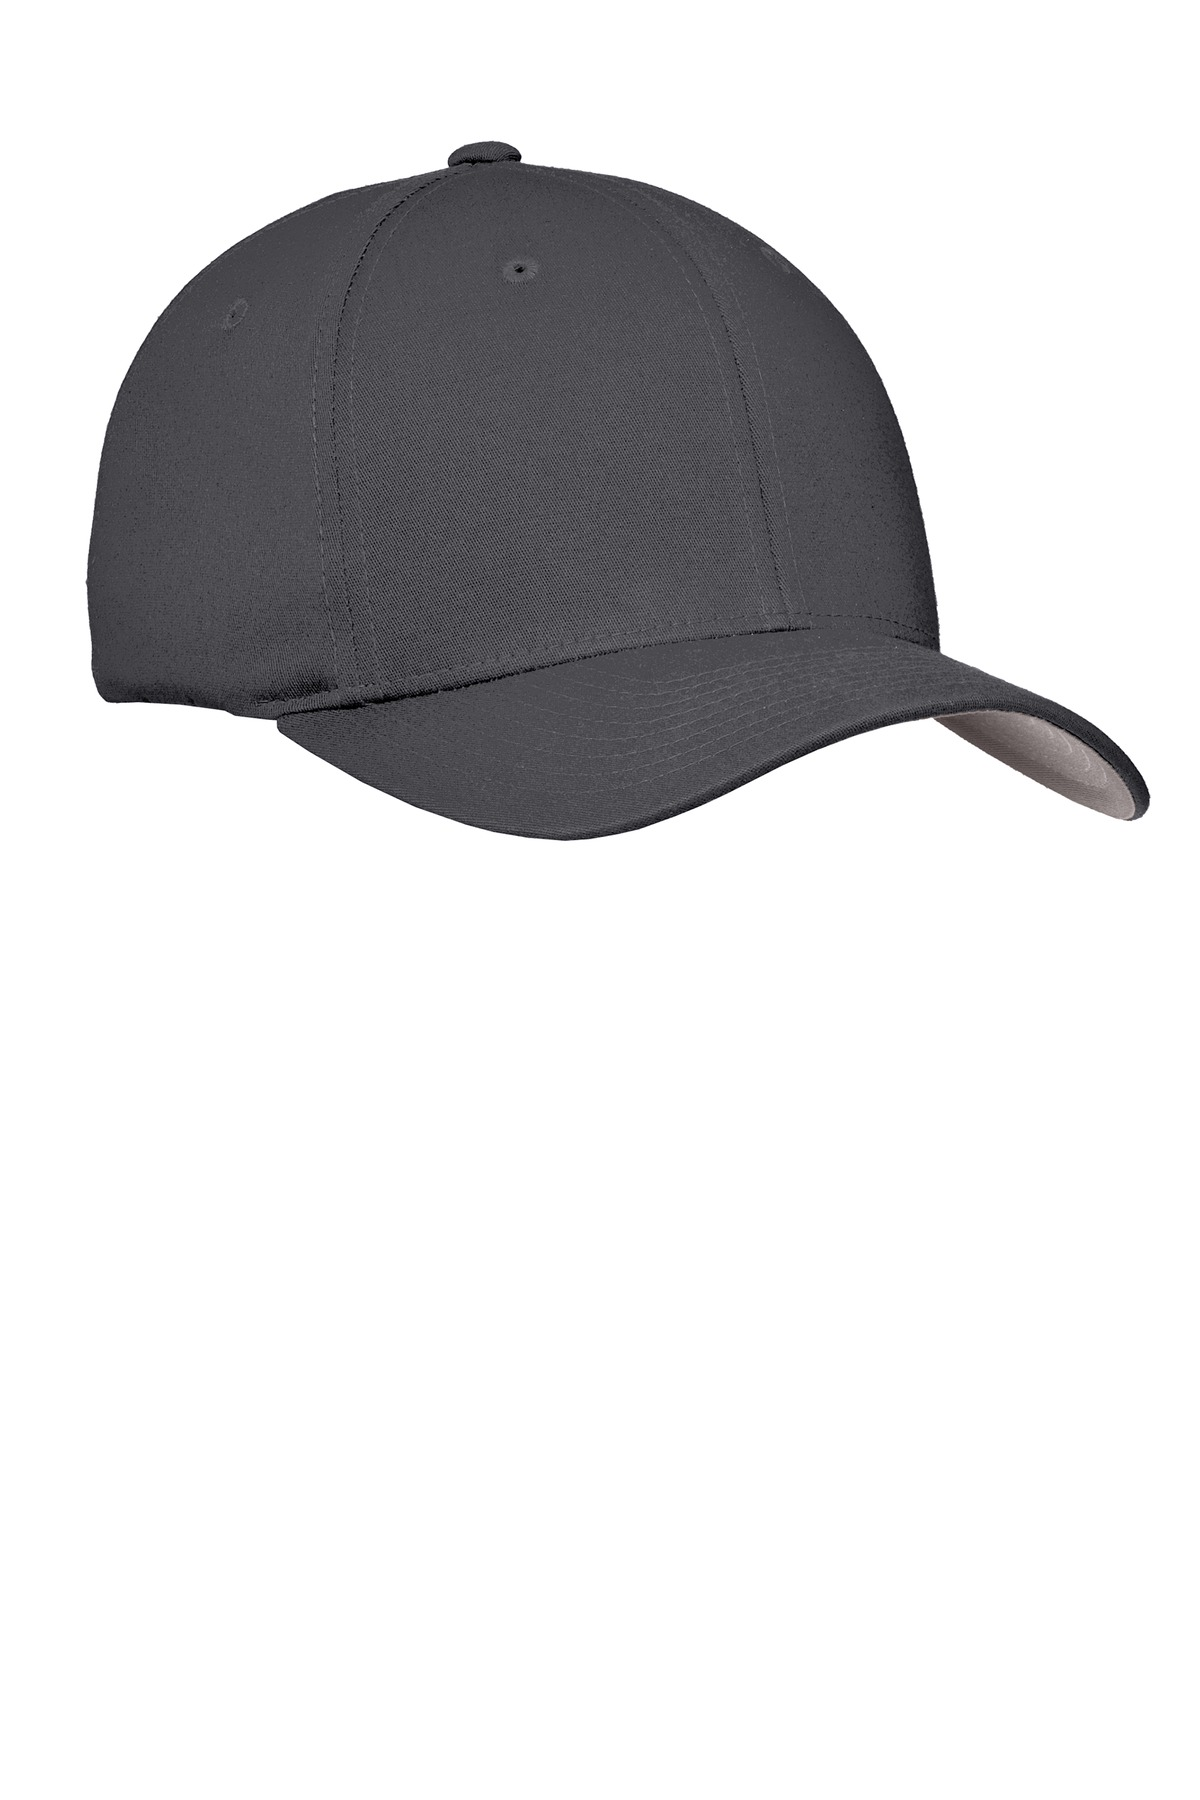 Port Authority ®  Flexfit ®  Cotton Twill Cap. C813 - Graphite Grey